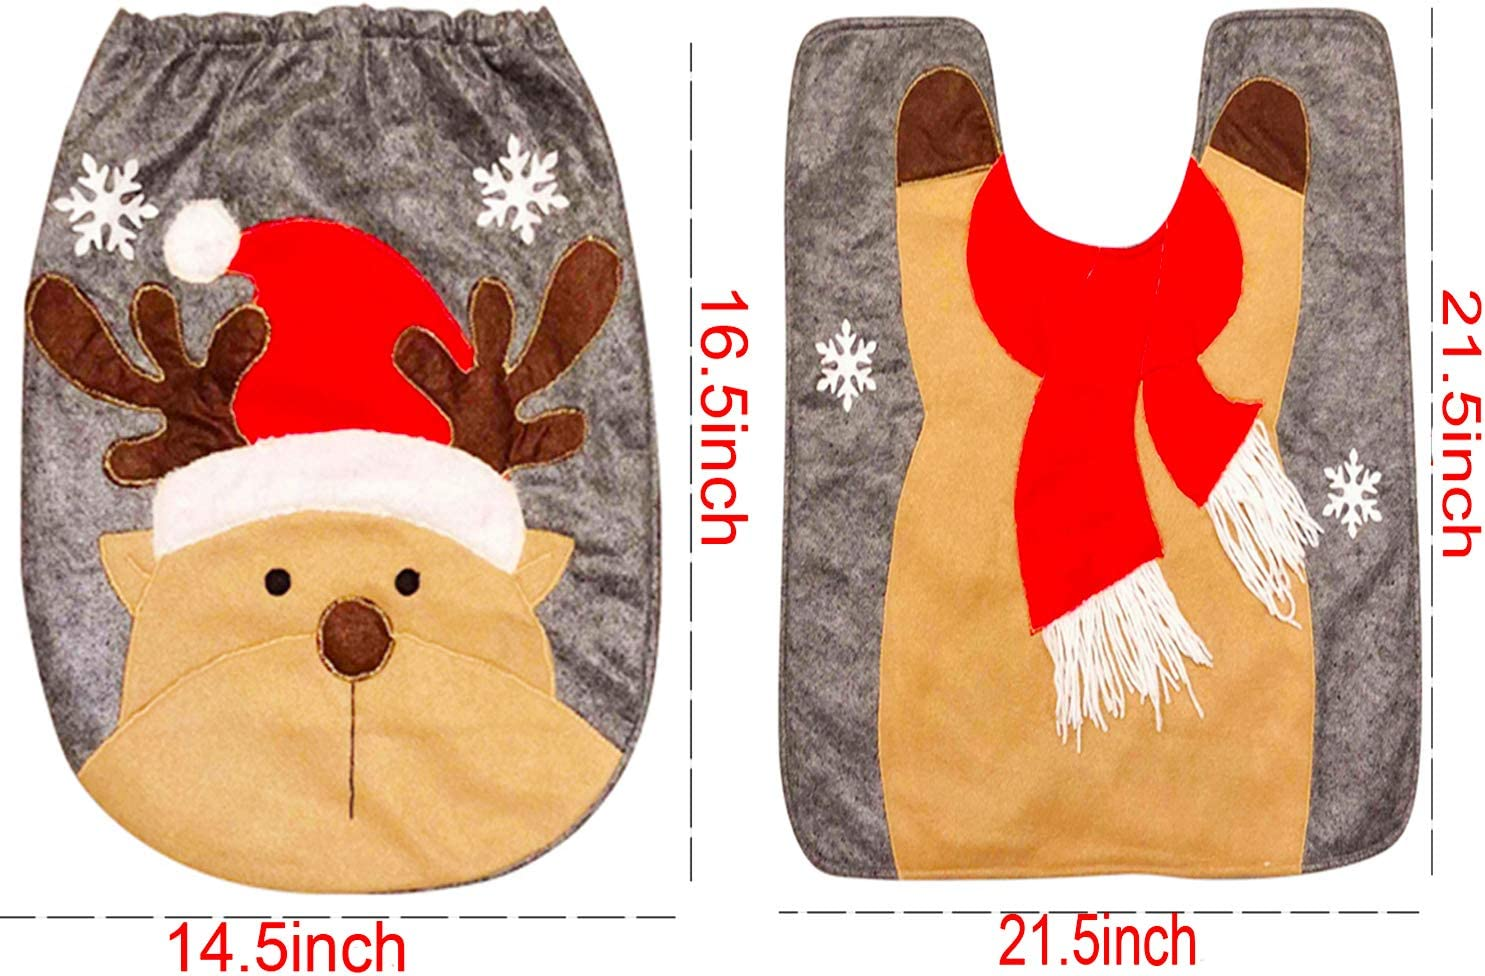 Volaremall Christmas Deer Toilet Seat Cover and Rug Set Red Funny Christmas Decorations Bathroom